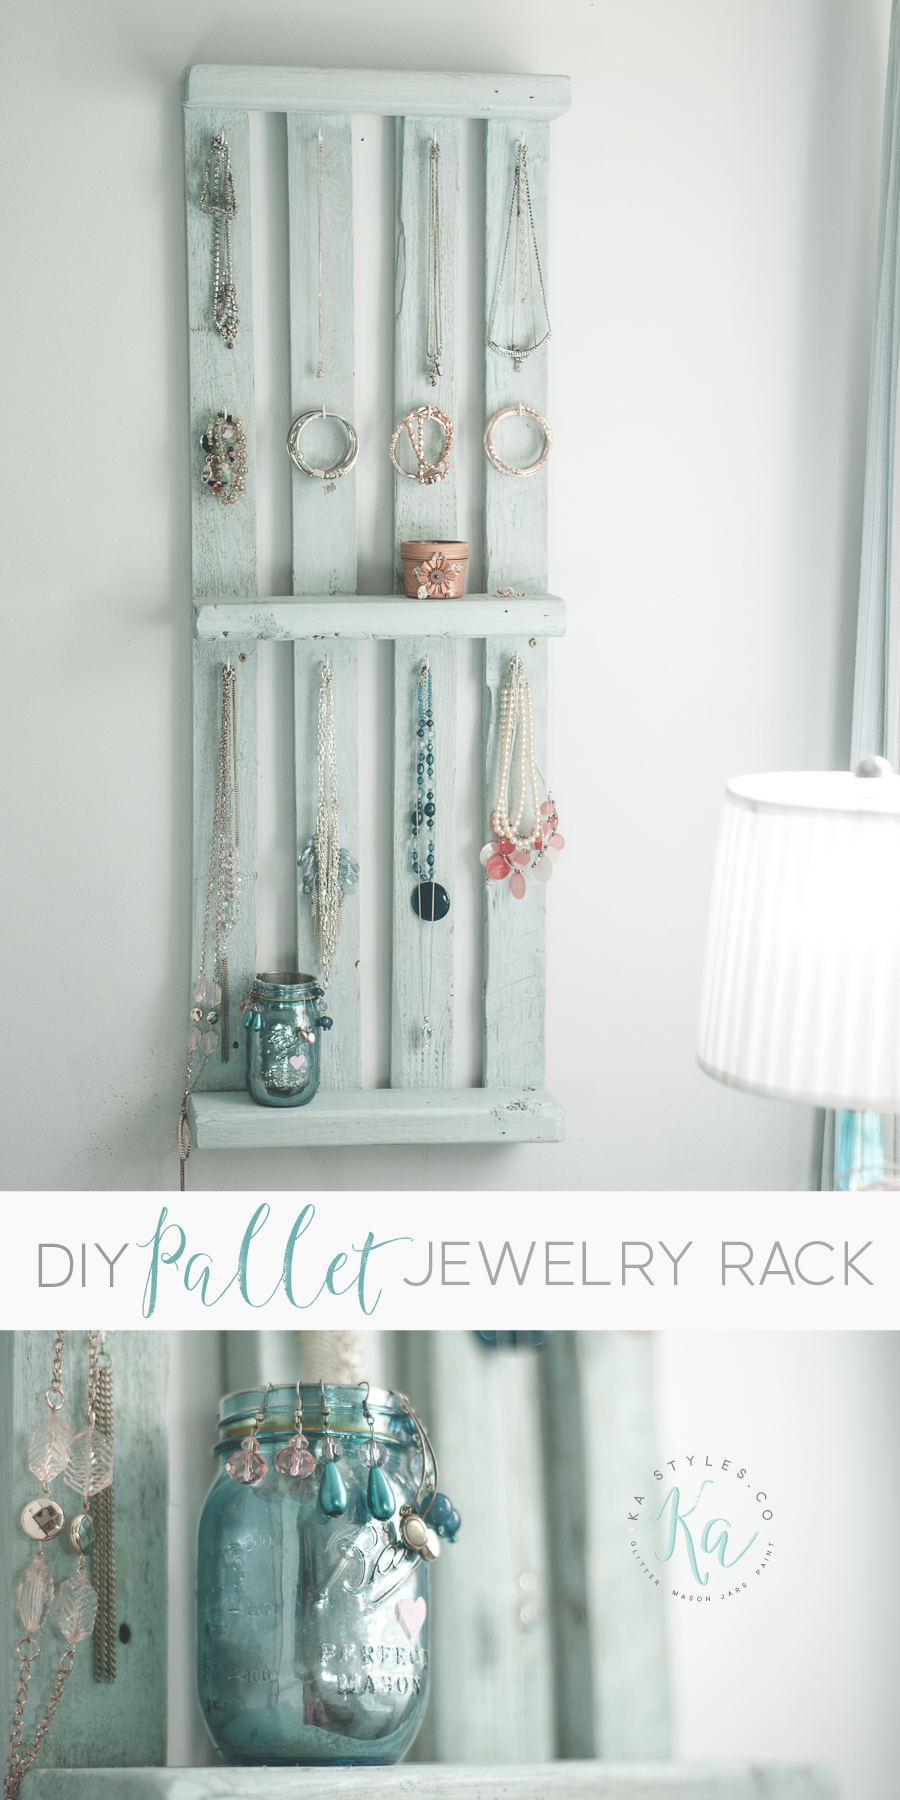 DIY jewelry pallet wall rack.